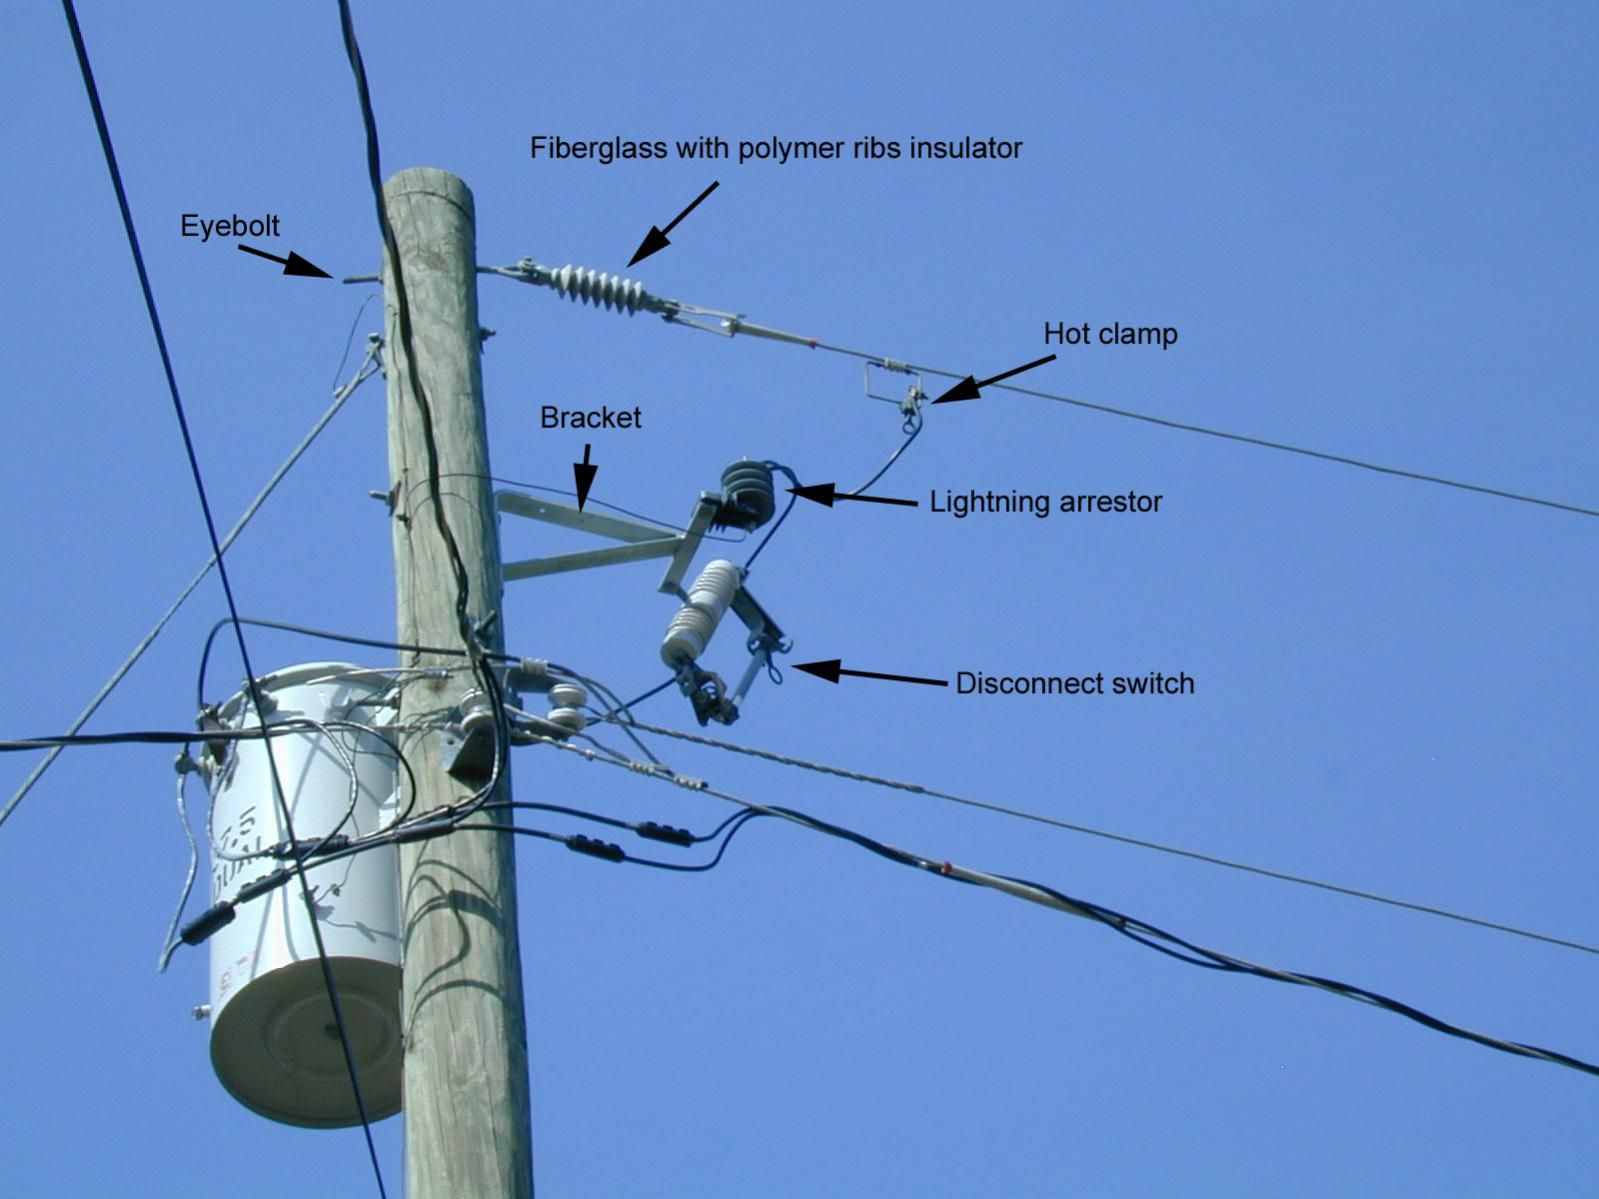 medium resolution of related image utility services electrical wiring utility pole things that bounce transformers